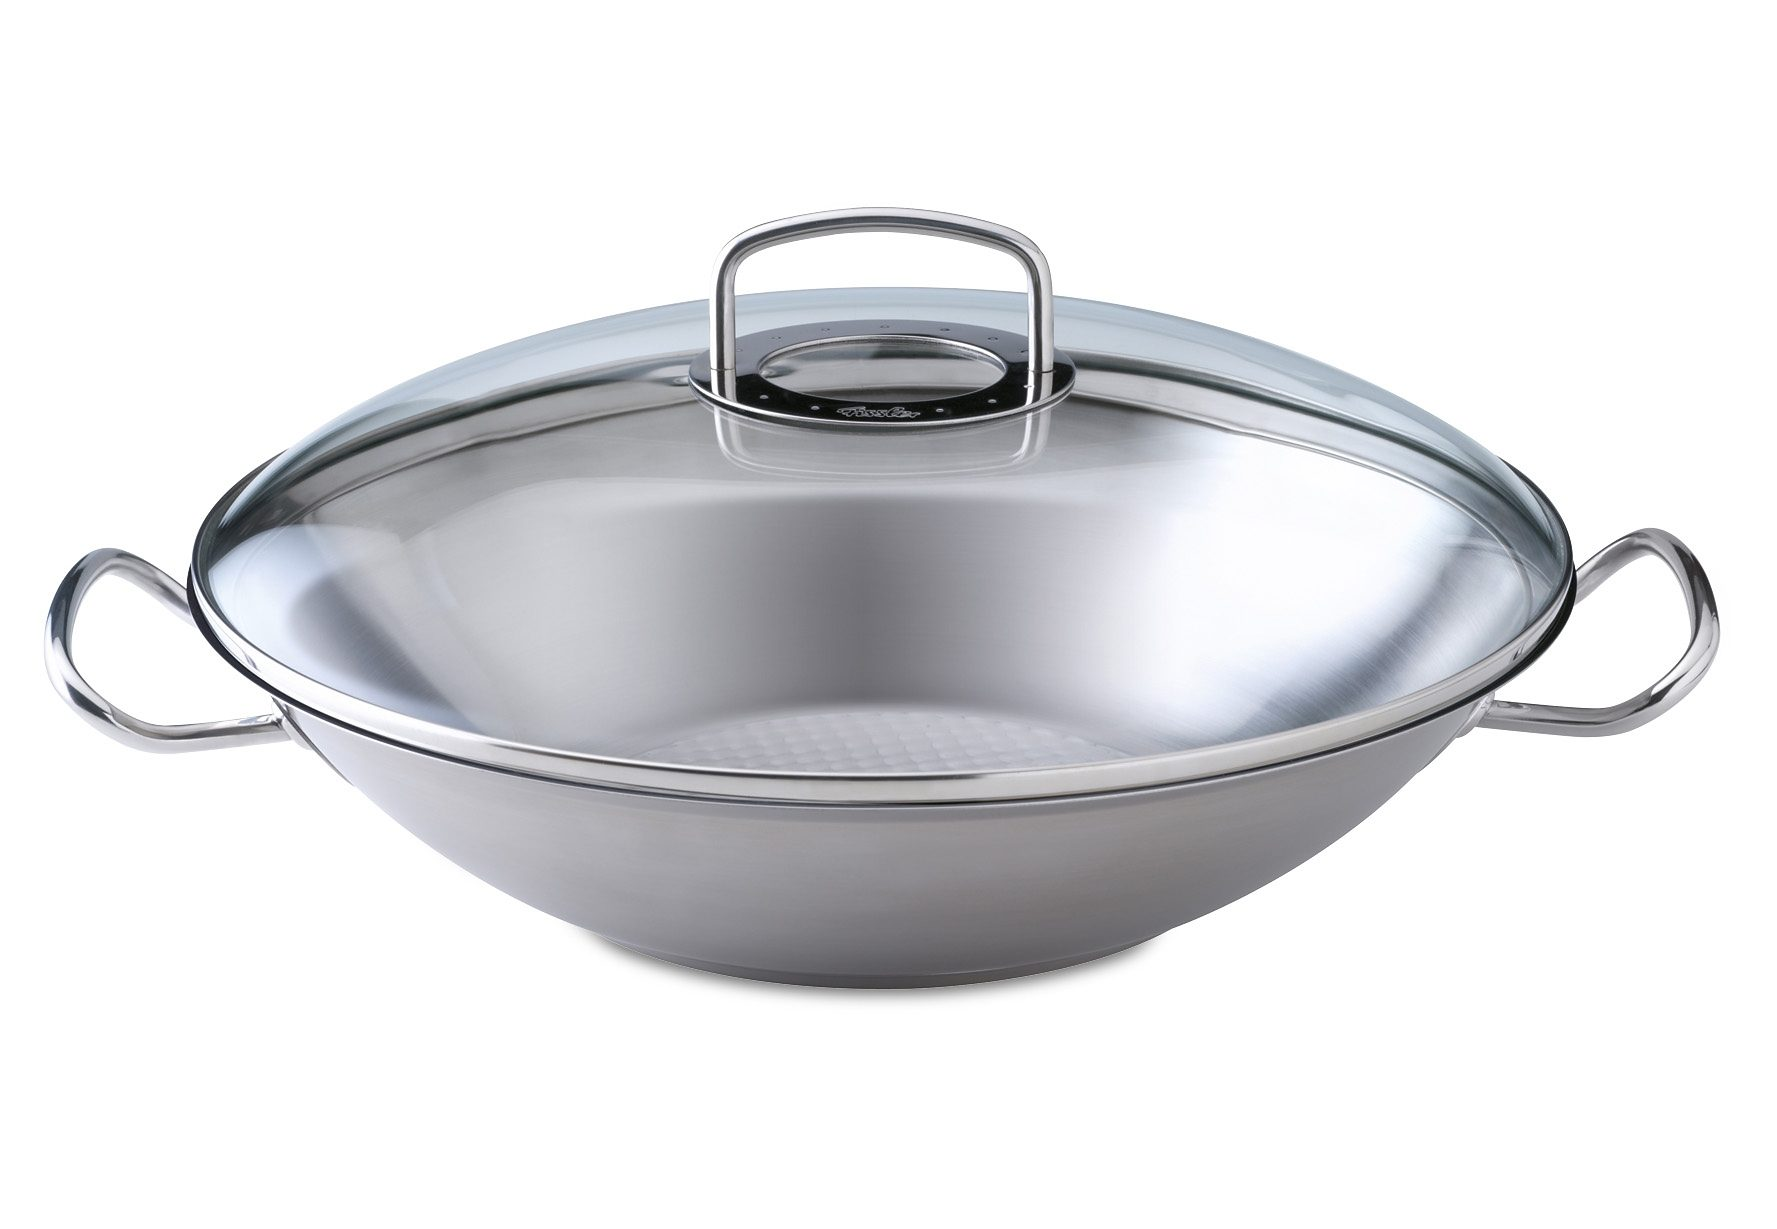 Original-profi collection Wok mit Glasdeckel, Ø 36 cm, Fissler